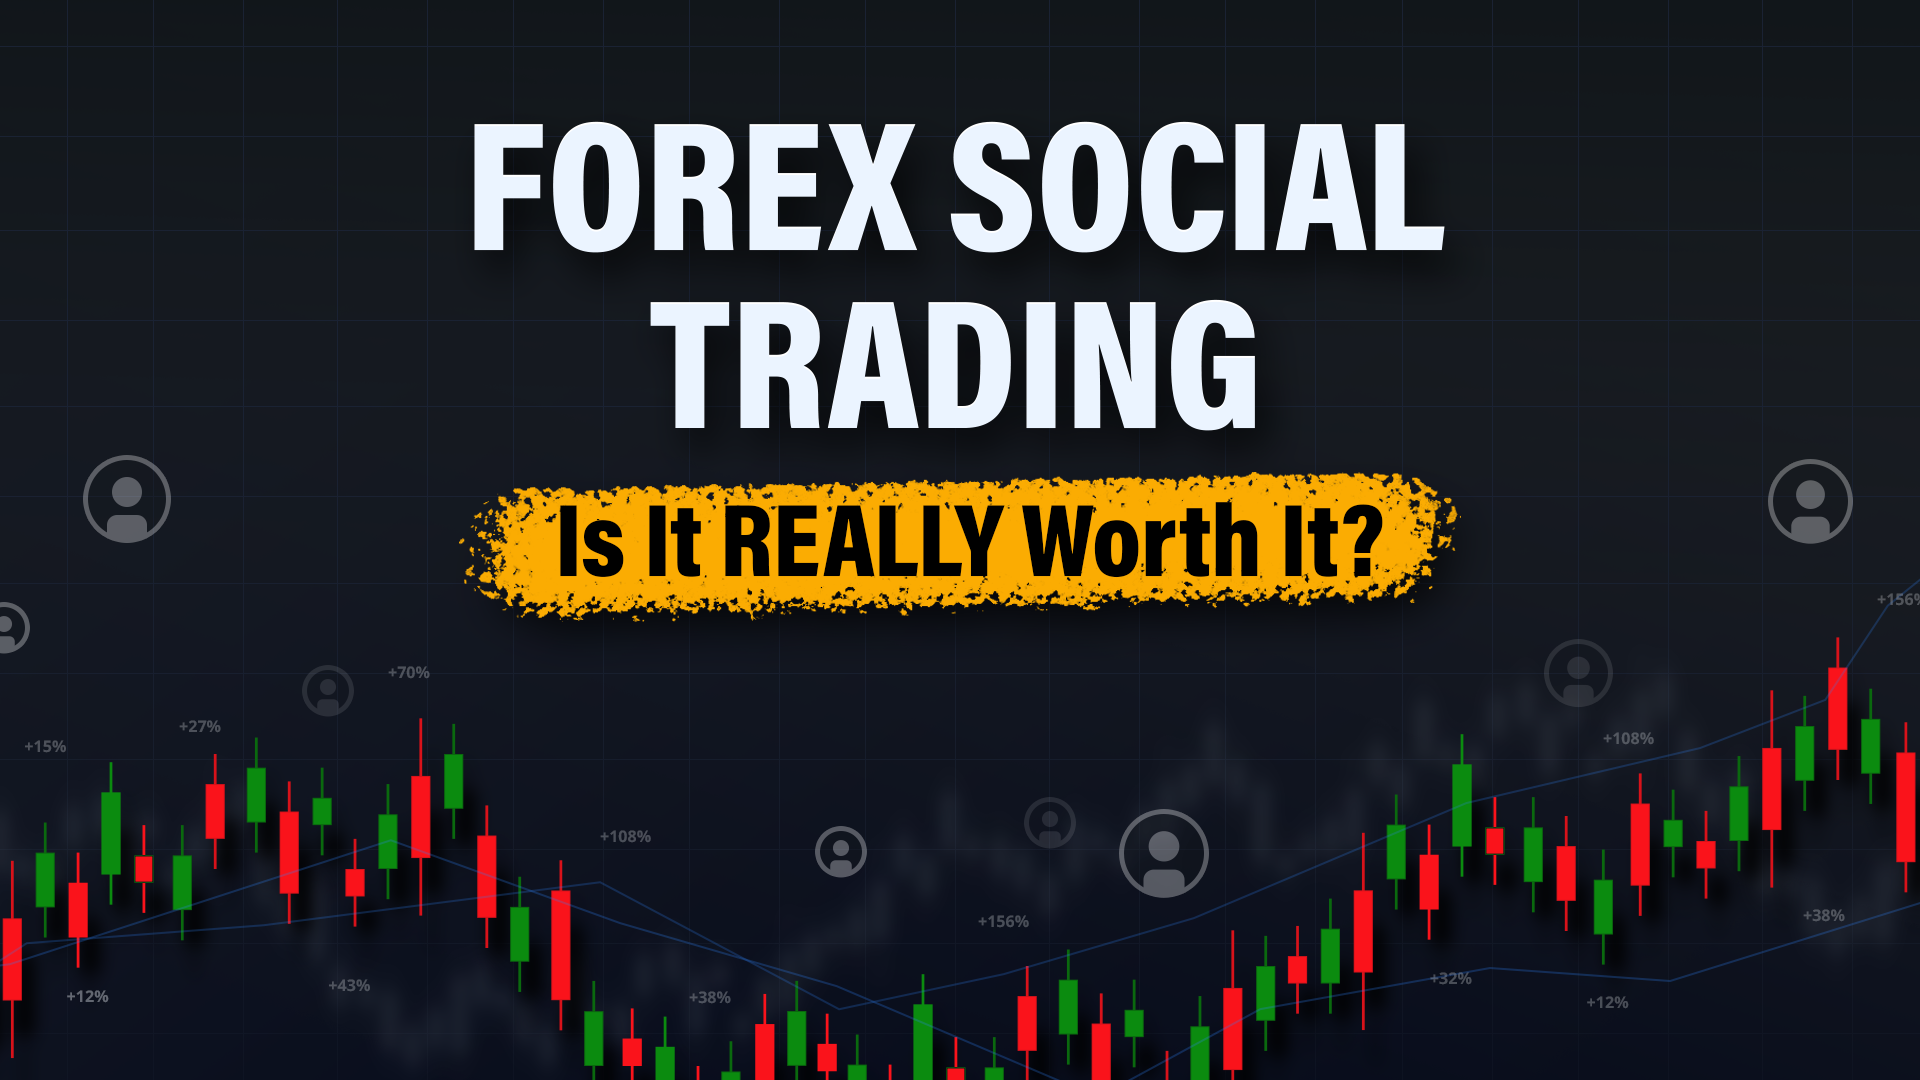 Forex Social Trading Is It Really